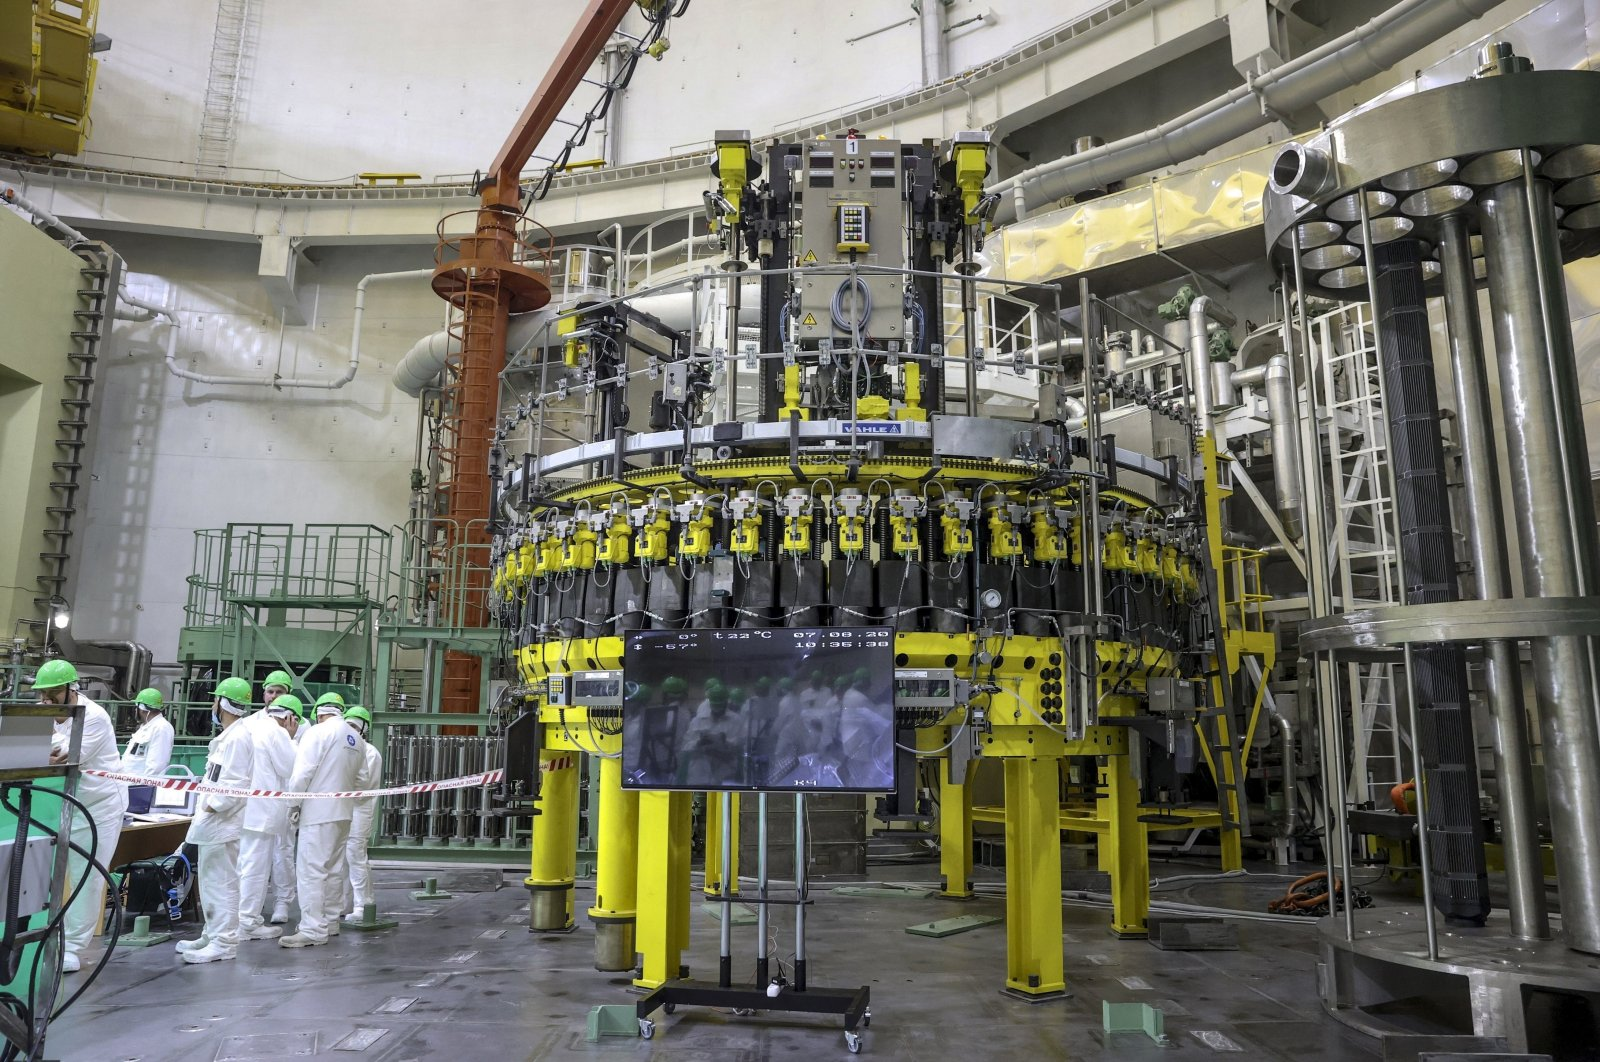 Personnel work to begin loading nuclear fuel at Belarus' first nuclear plant which was built by Russia's state nuclear corporation Rosatom, near Astravets, Belarus, Aug. 7, 2020. (BelTa via AP)